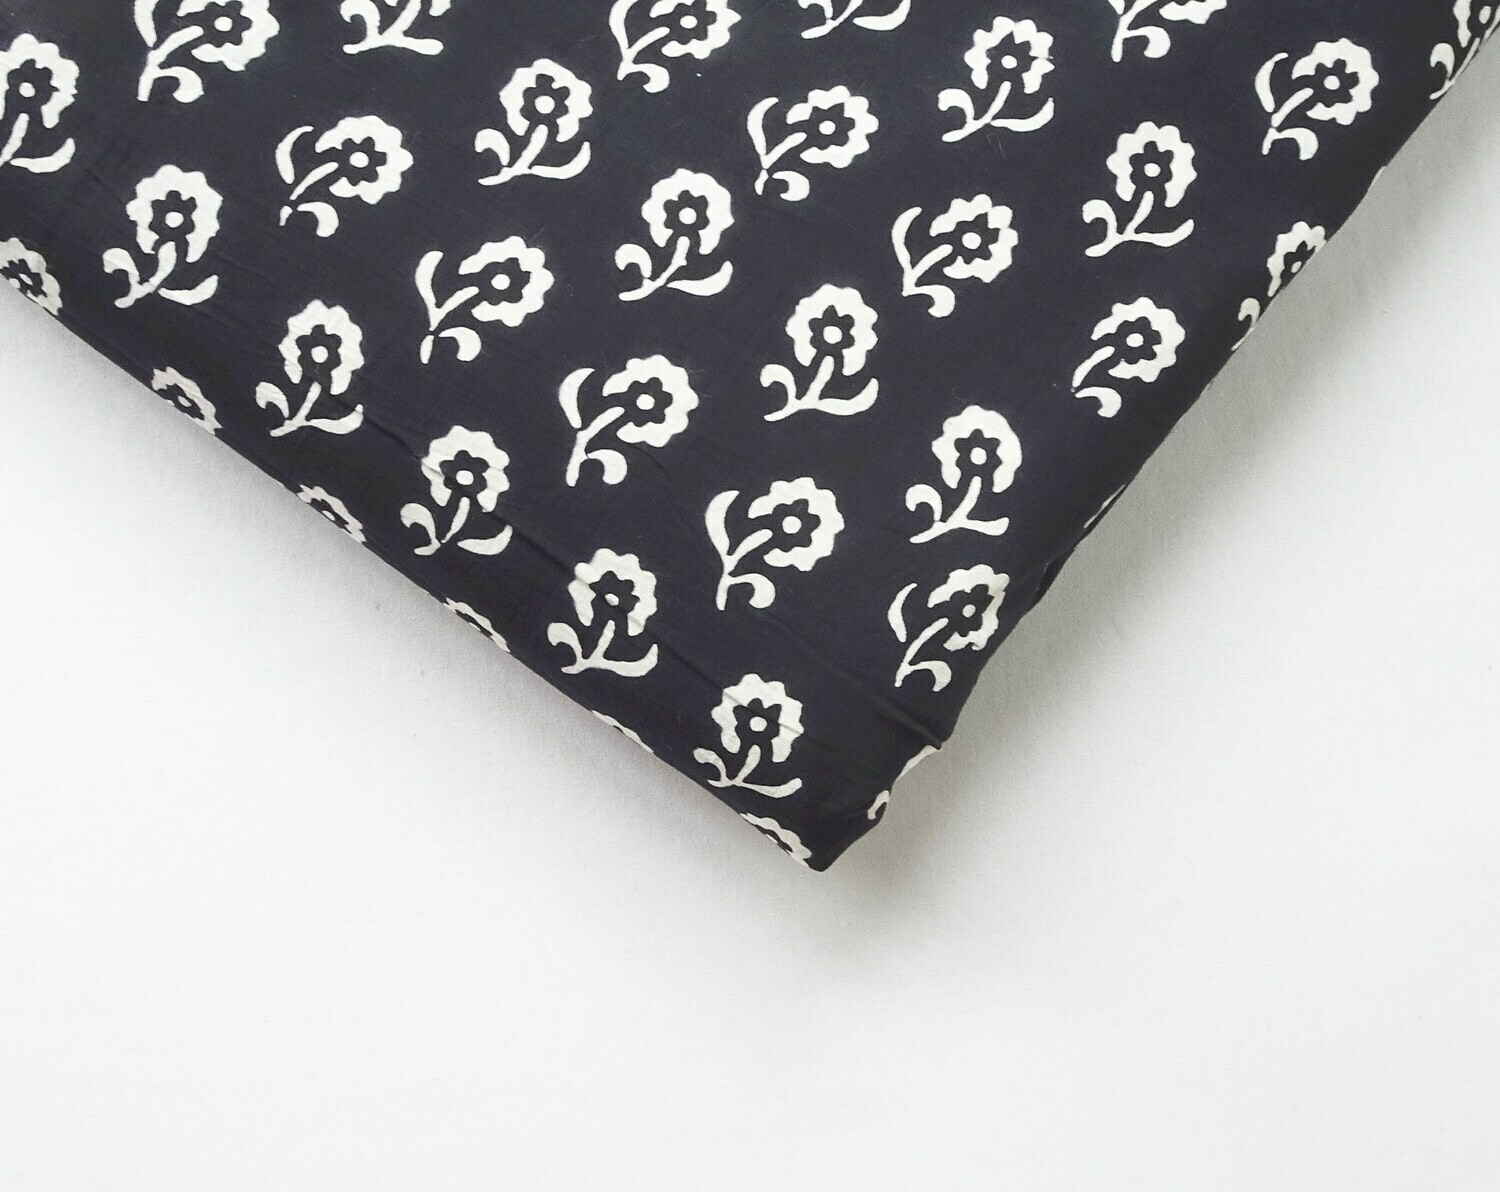 Black and White Block Print Cotton Fabric, Medium Floral Print - 44 Inches Wide - Sold by Half Meter